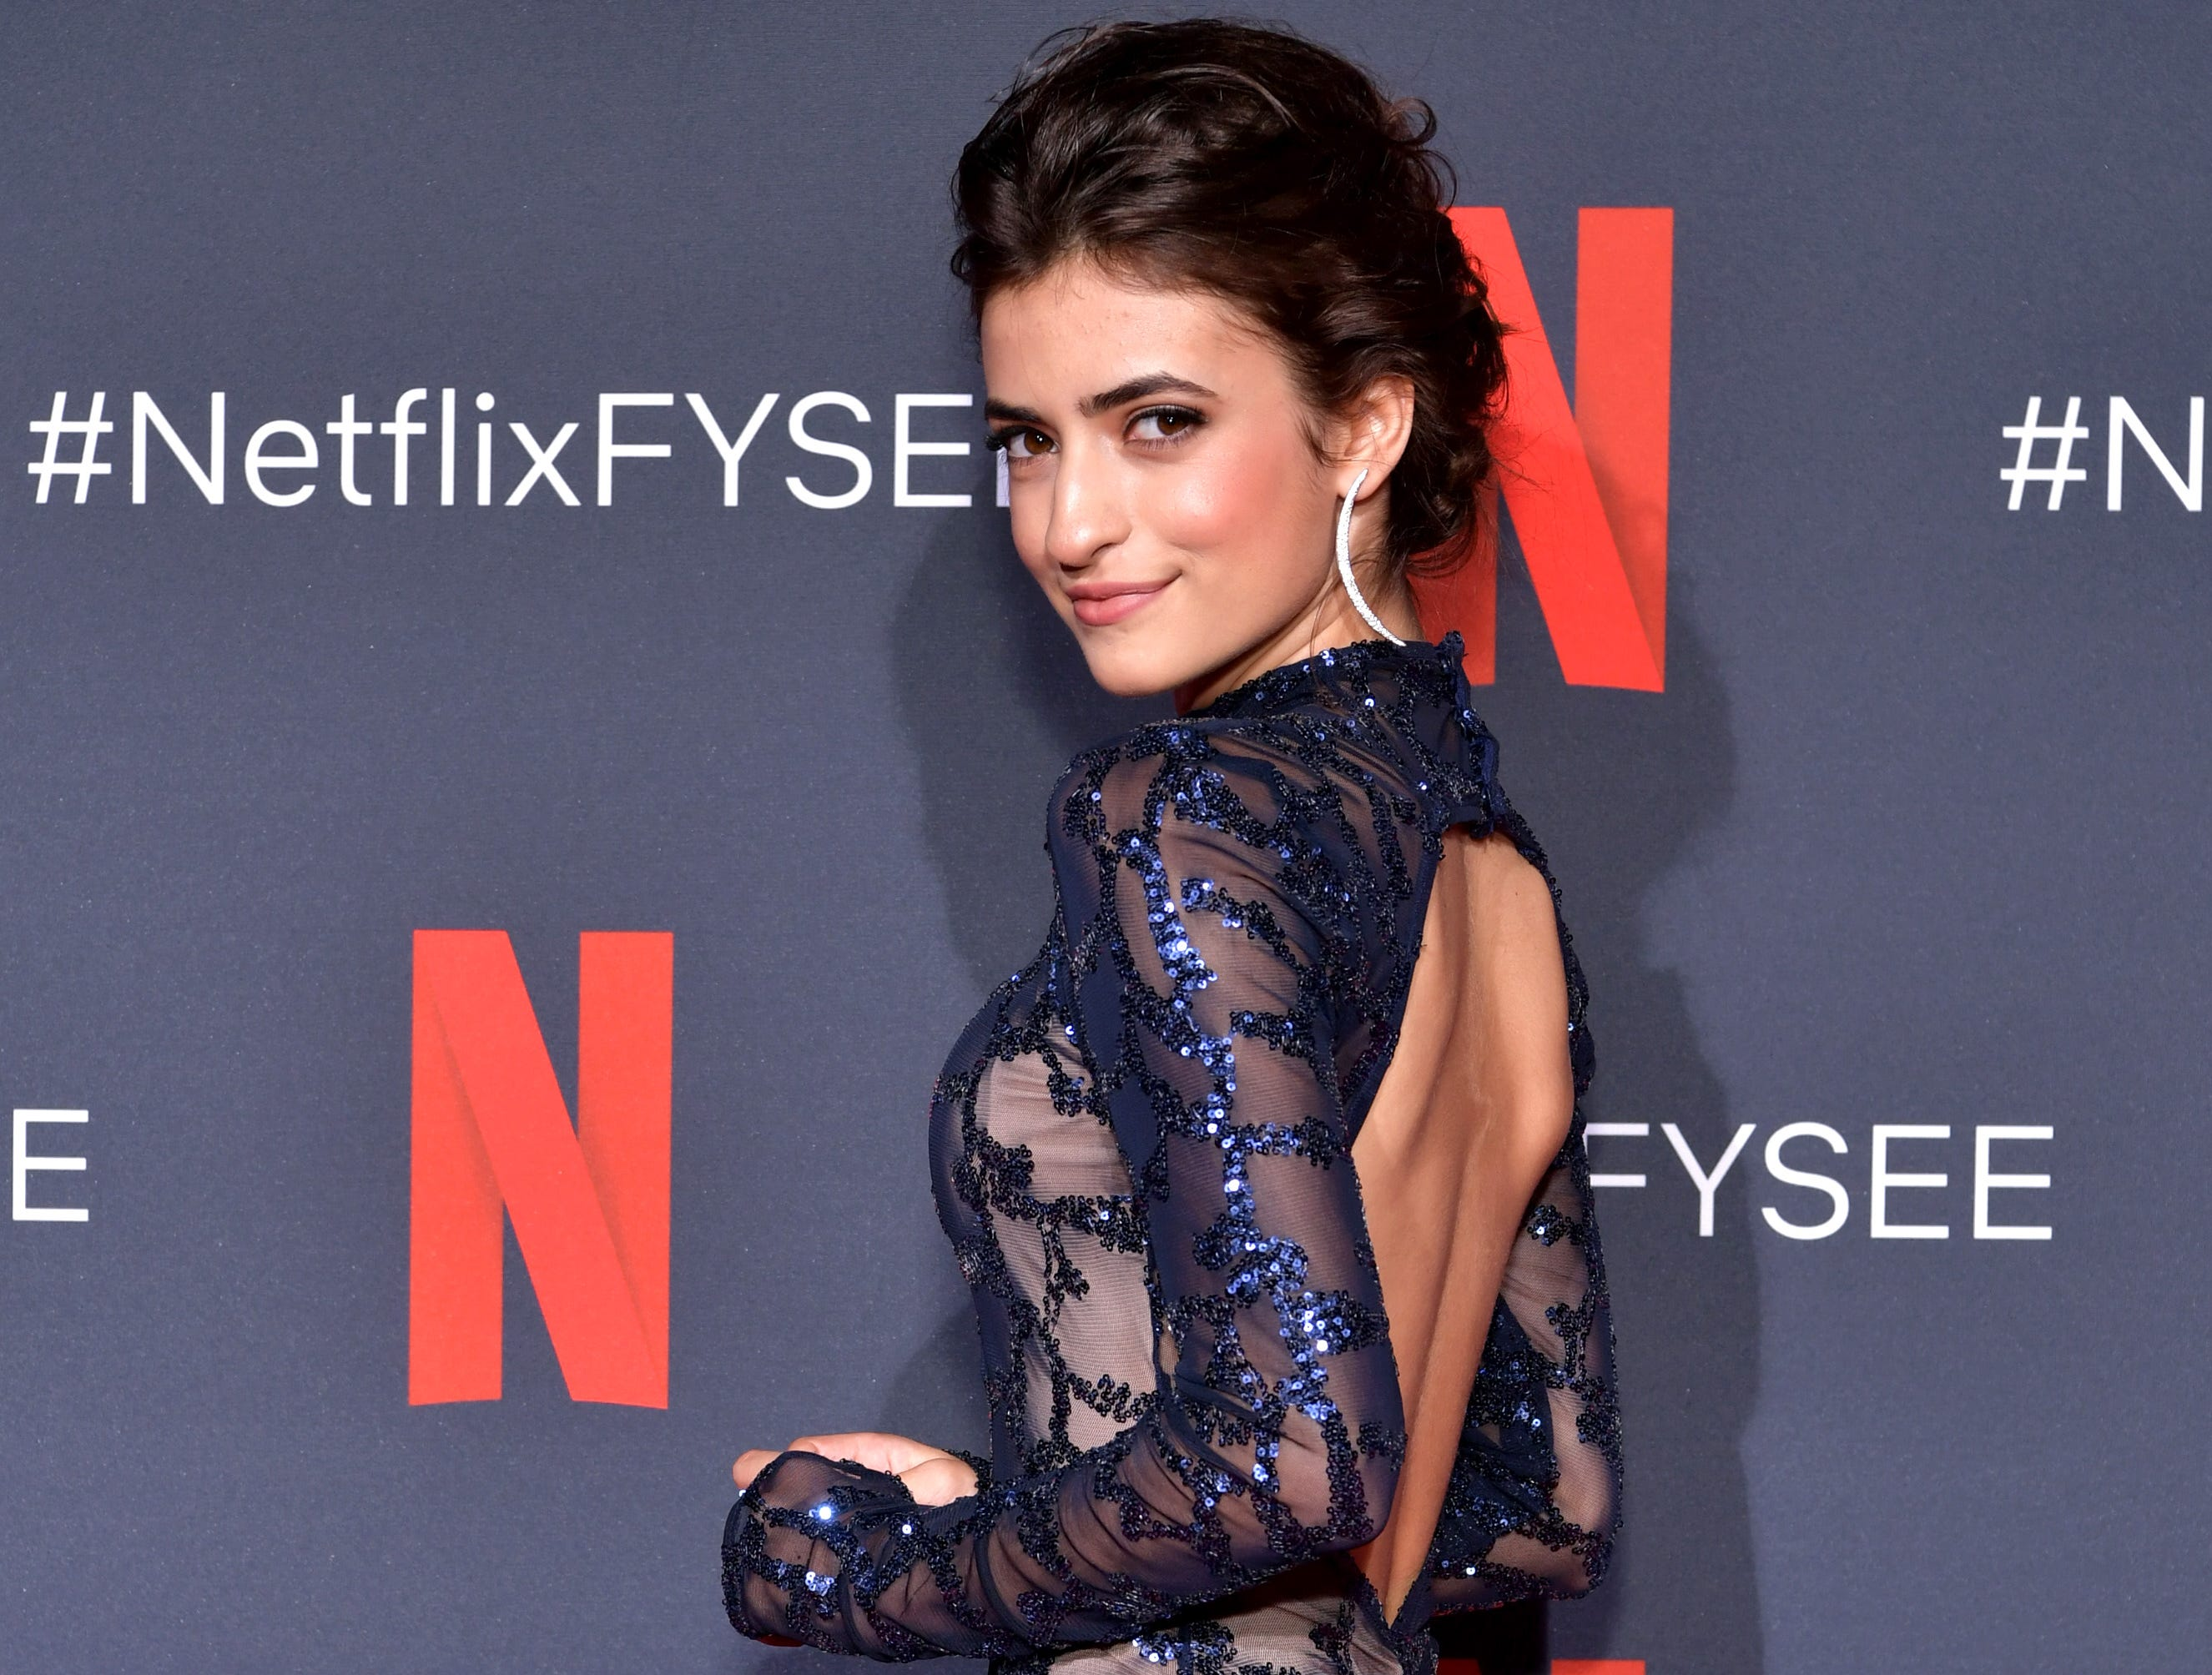 Soni Bringas attends the Netflix FYSEE 'Prom Night' Reception at Raleigh Studios on May 17, 2019 in Los Angeles, Calif.